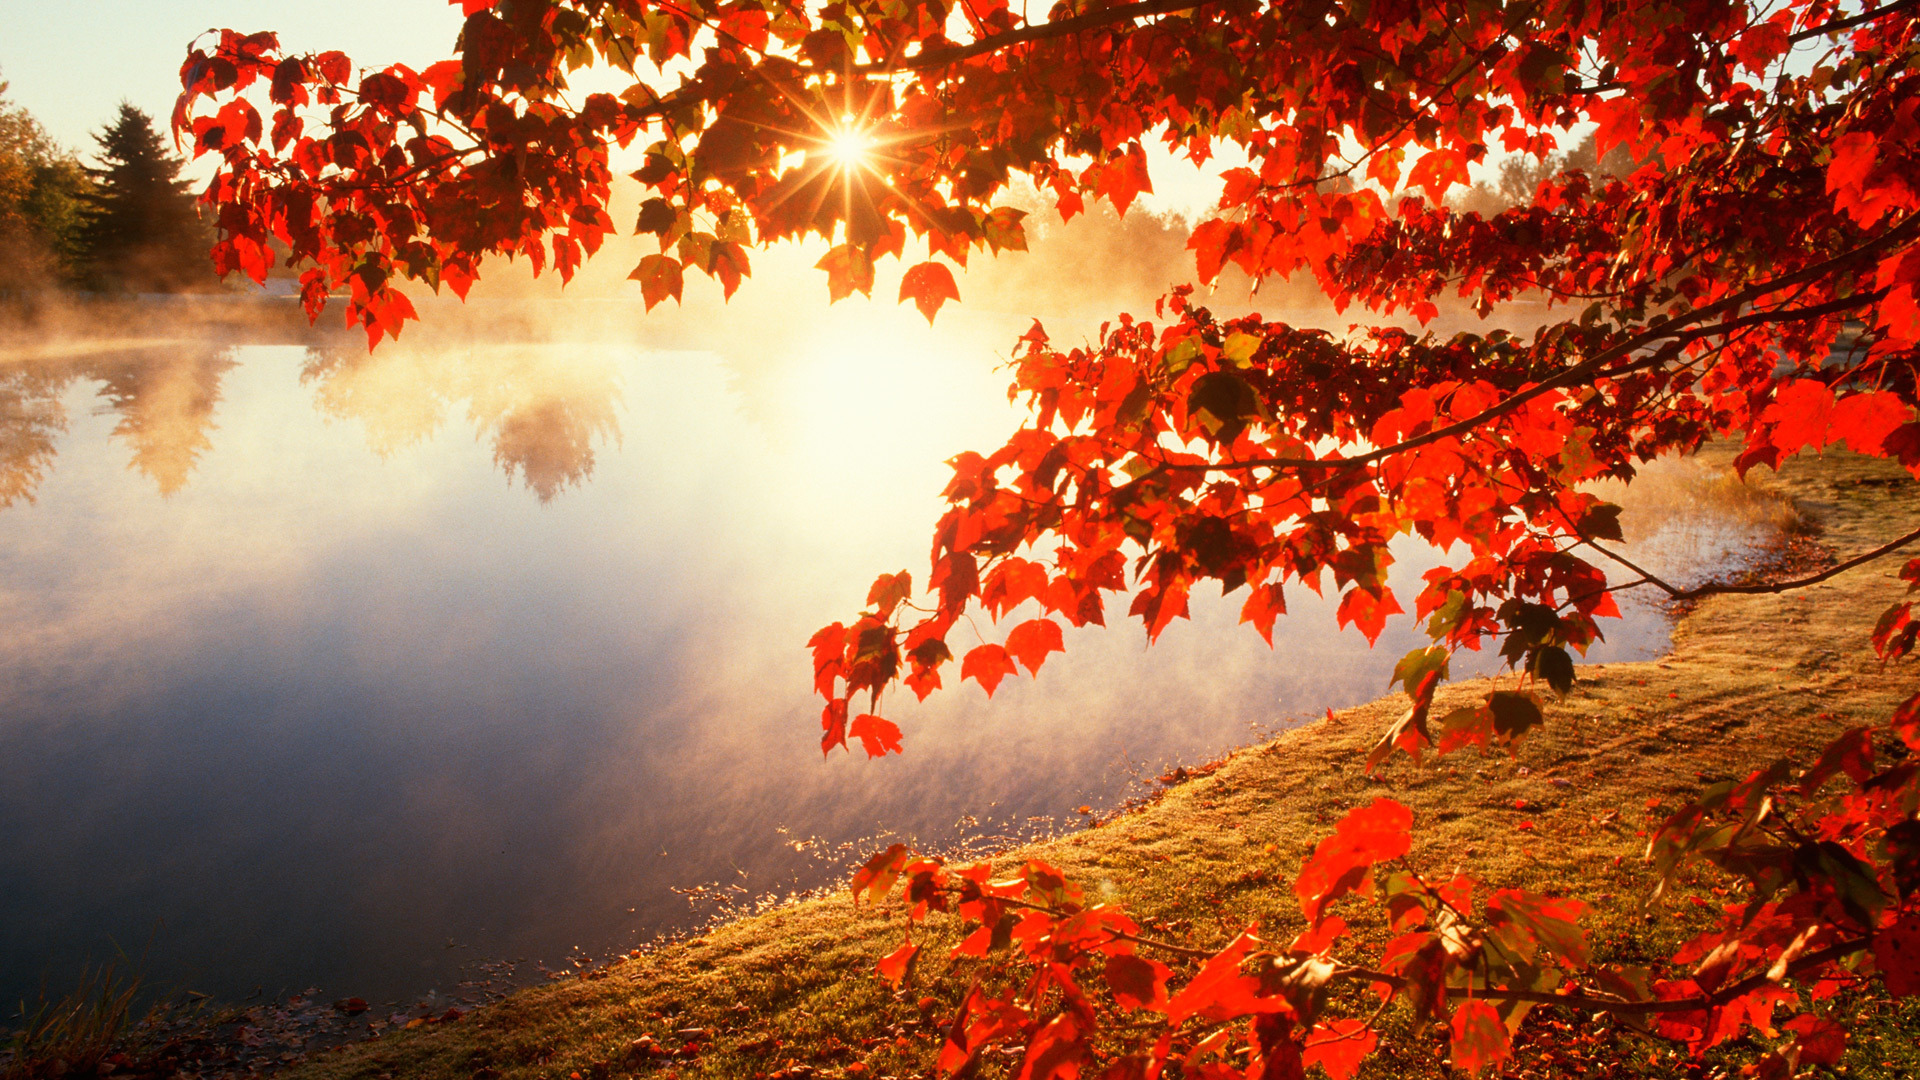 Collection of Autumn Wallpapers on HDWallpapers